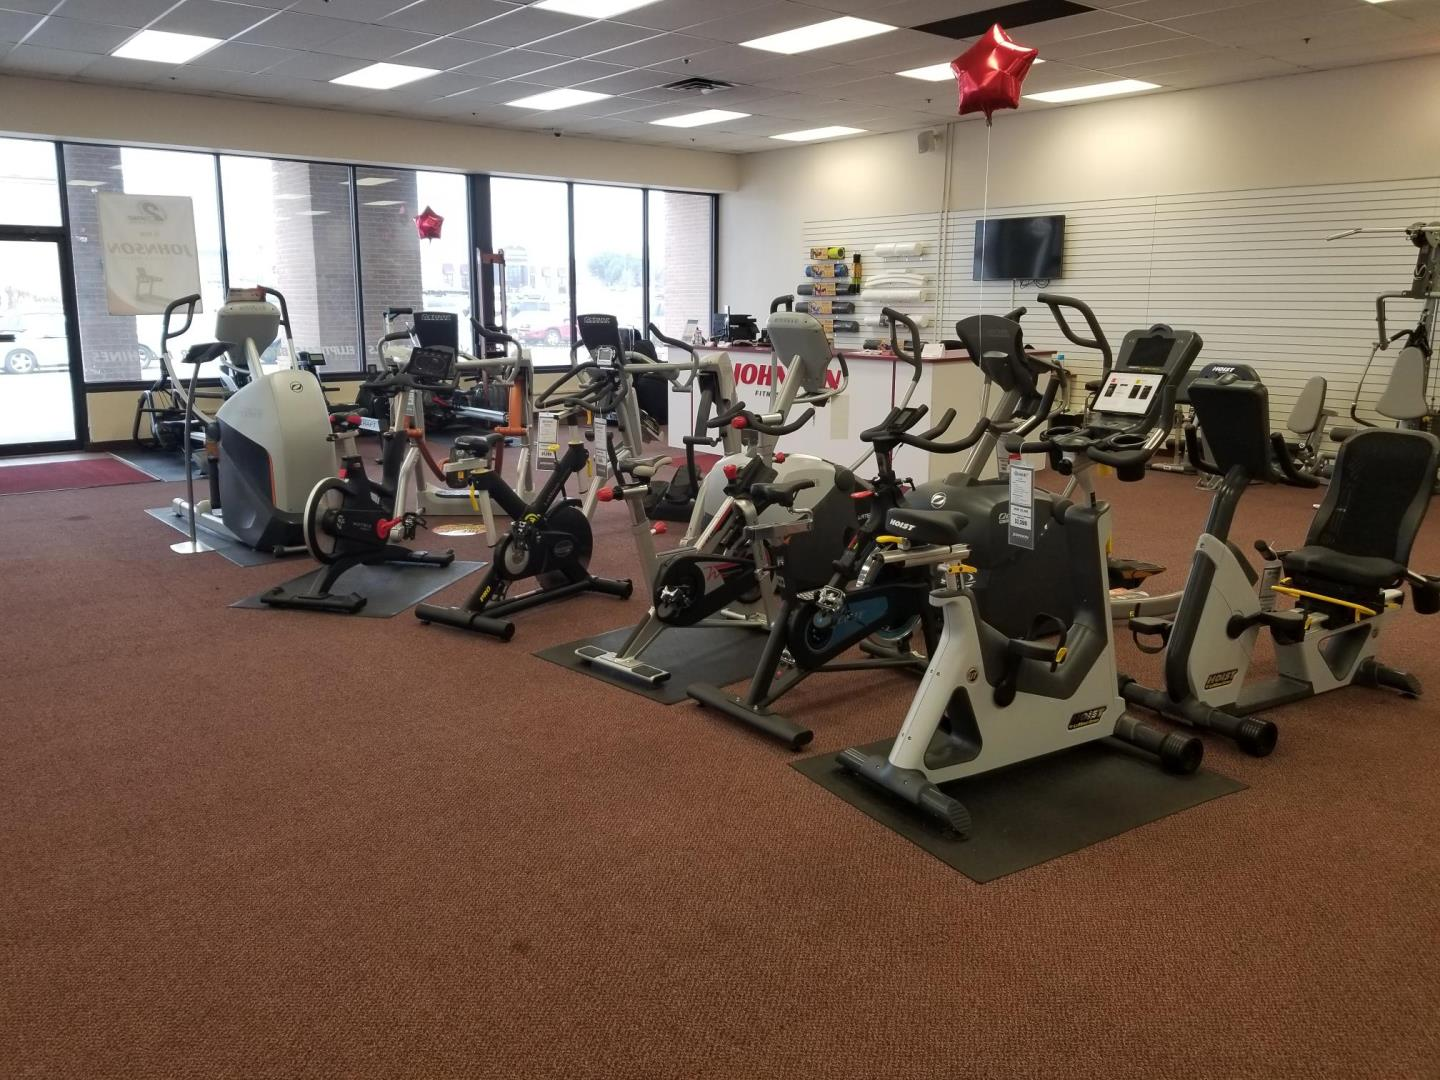 Johnson Fitness & Wellness - Merrillville, IN